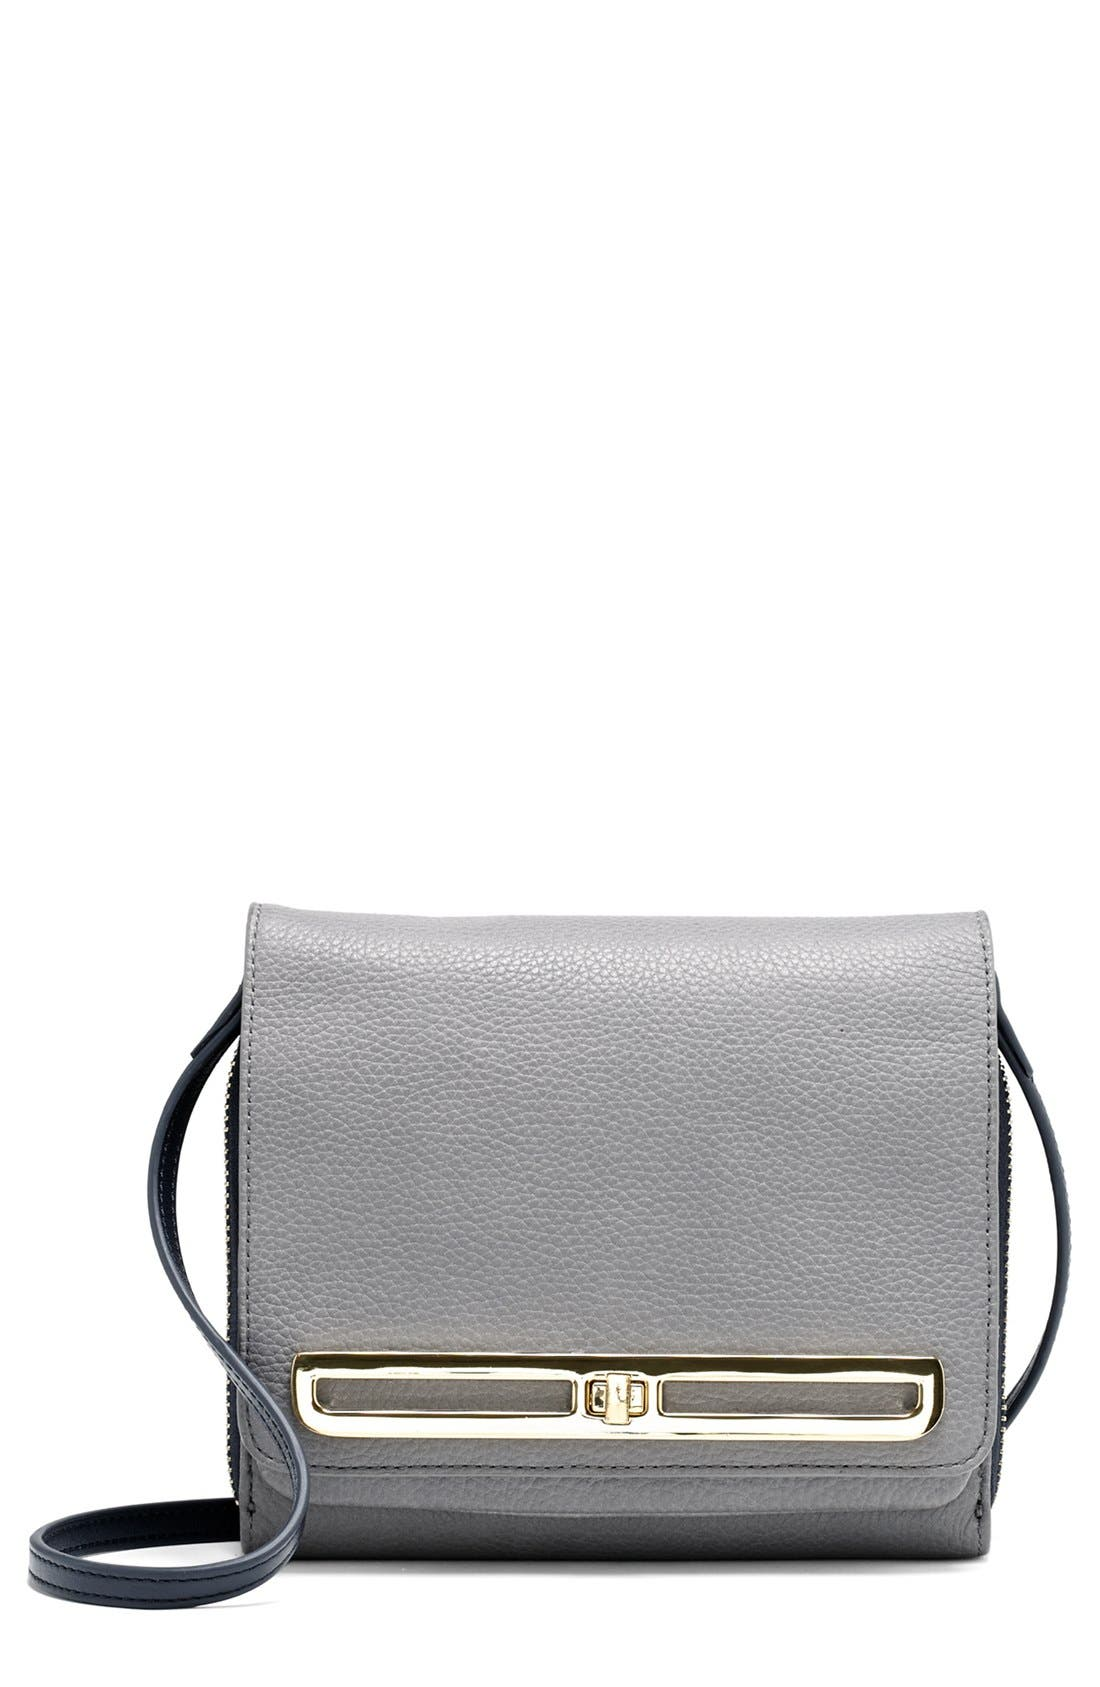 Alternate Image 1 Selected - Vince Camuto 'Small Anika' Crossbody Bag